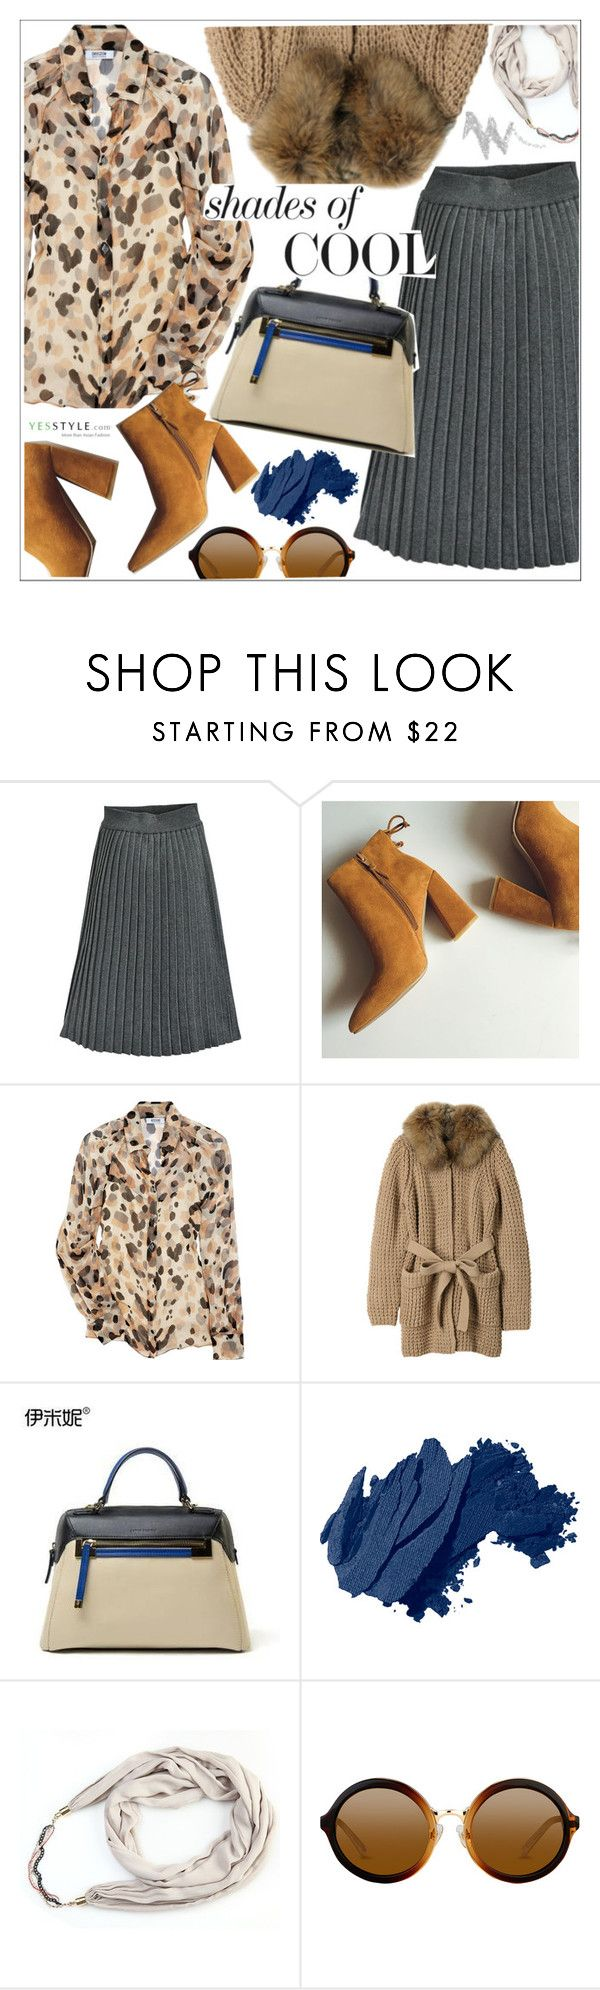 """YesStyle - 10% off coupon"" by teoecar ❤ liked on Polyvore featuring Moschino Cheap & Chic, Mihoko Saito, Emini House, Bobbi Brown Cosmetics, NYX, yesstyle, prefall and productPageSectionTop"